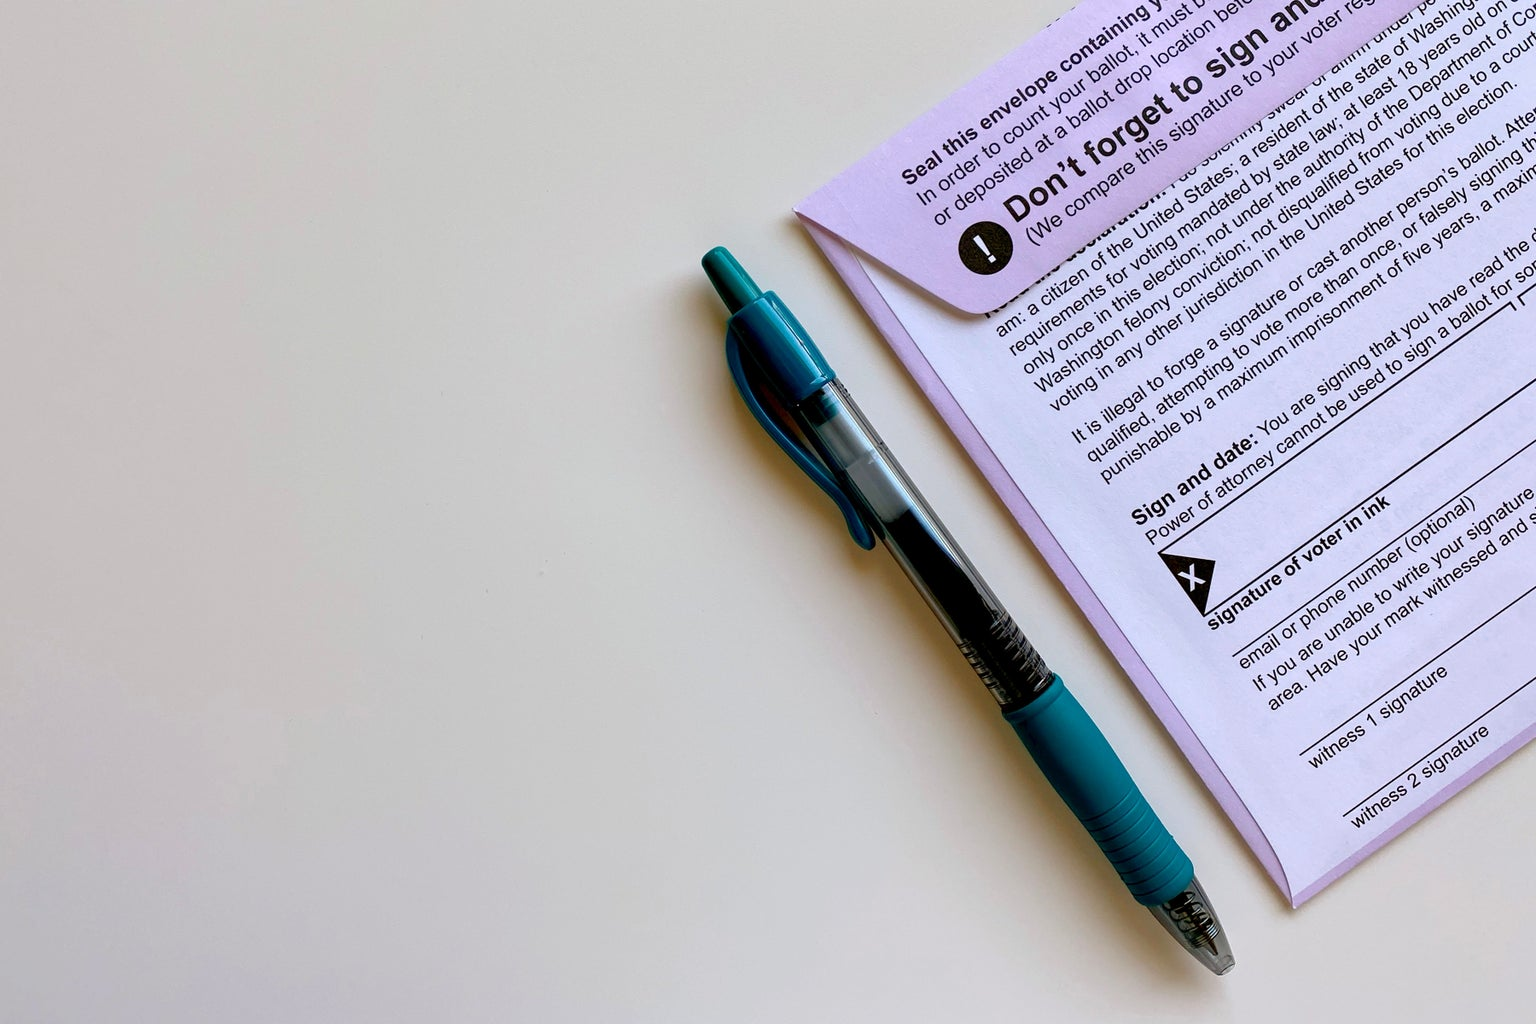 mail in ballot envelope with pen